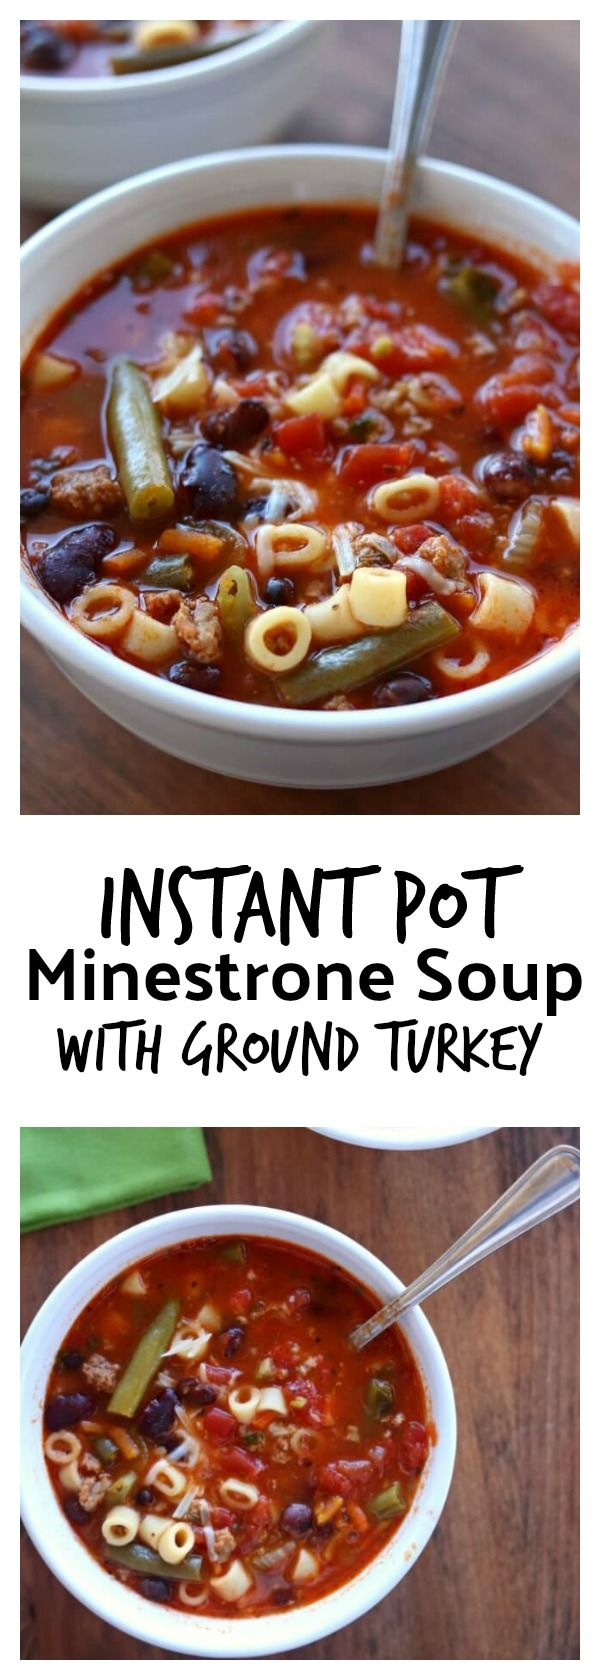 Instant Pot (Ground Turkey) Minestrone Soup–a colorful, healthy and brightly flavored soup that is full of vegetables, basil, beans, pasta, and ground turkey. Pressure cook this soup quickly and enjoy a warm bowl of deliciousness for dinner. #instantpot #pressurecooker